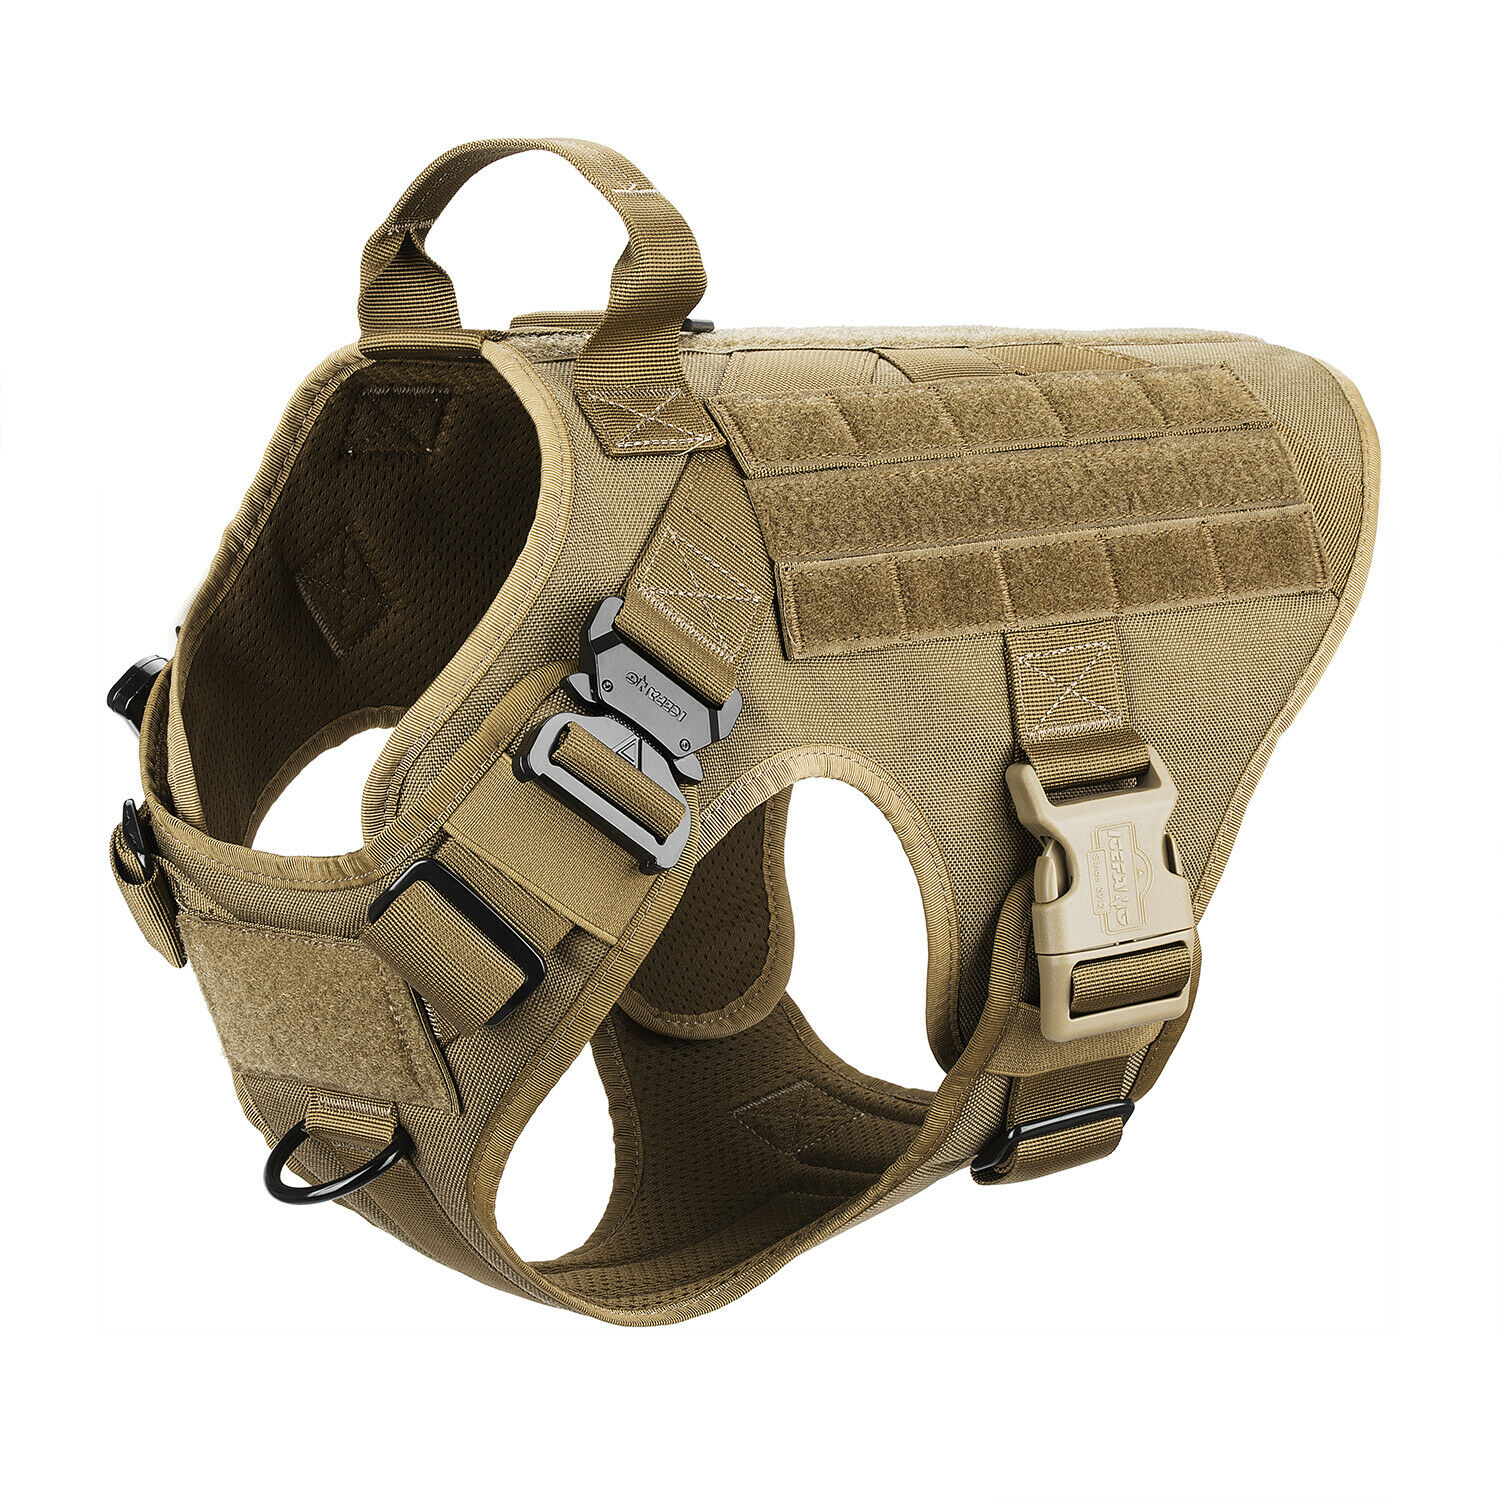 tactical-dog-harness-k9-molle-vest-with-handle-no-pulling-front-clip